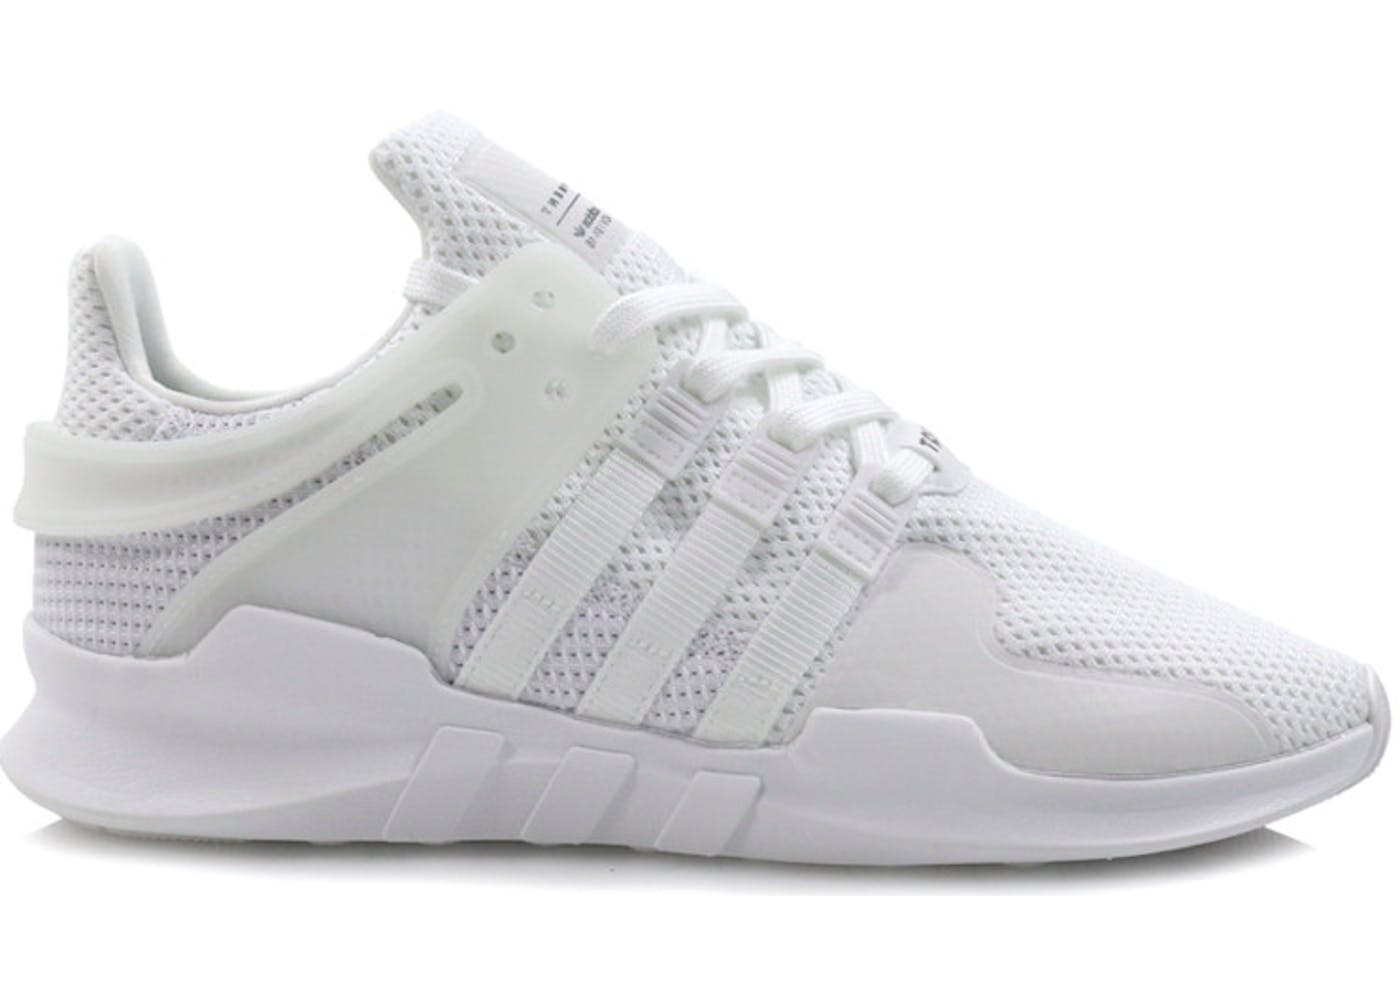 Adidas Partners With Air for Collaborative EQT 93/16 and EQT